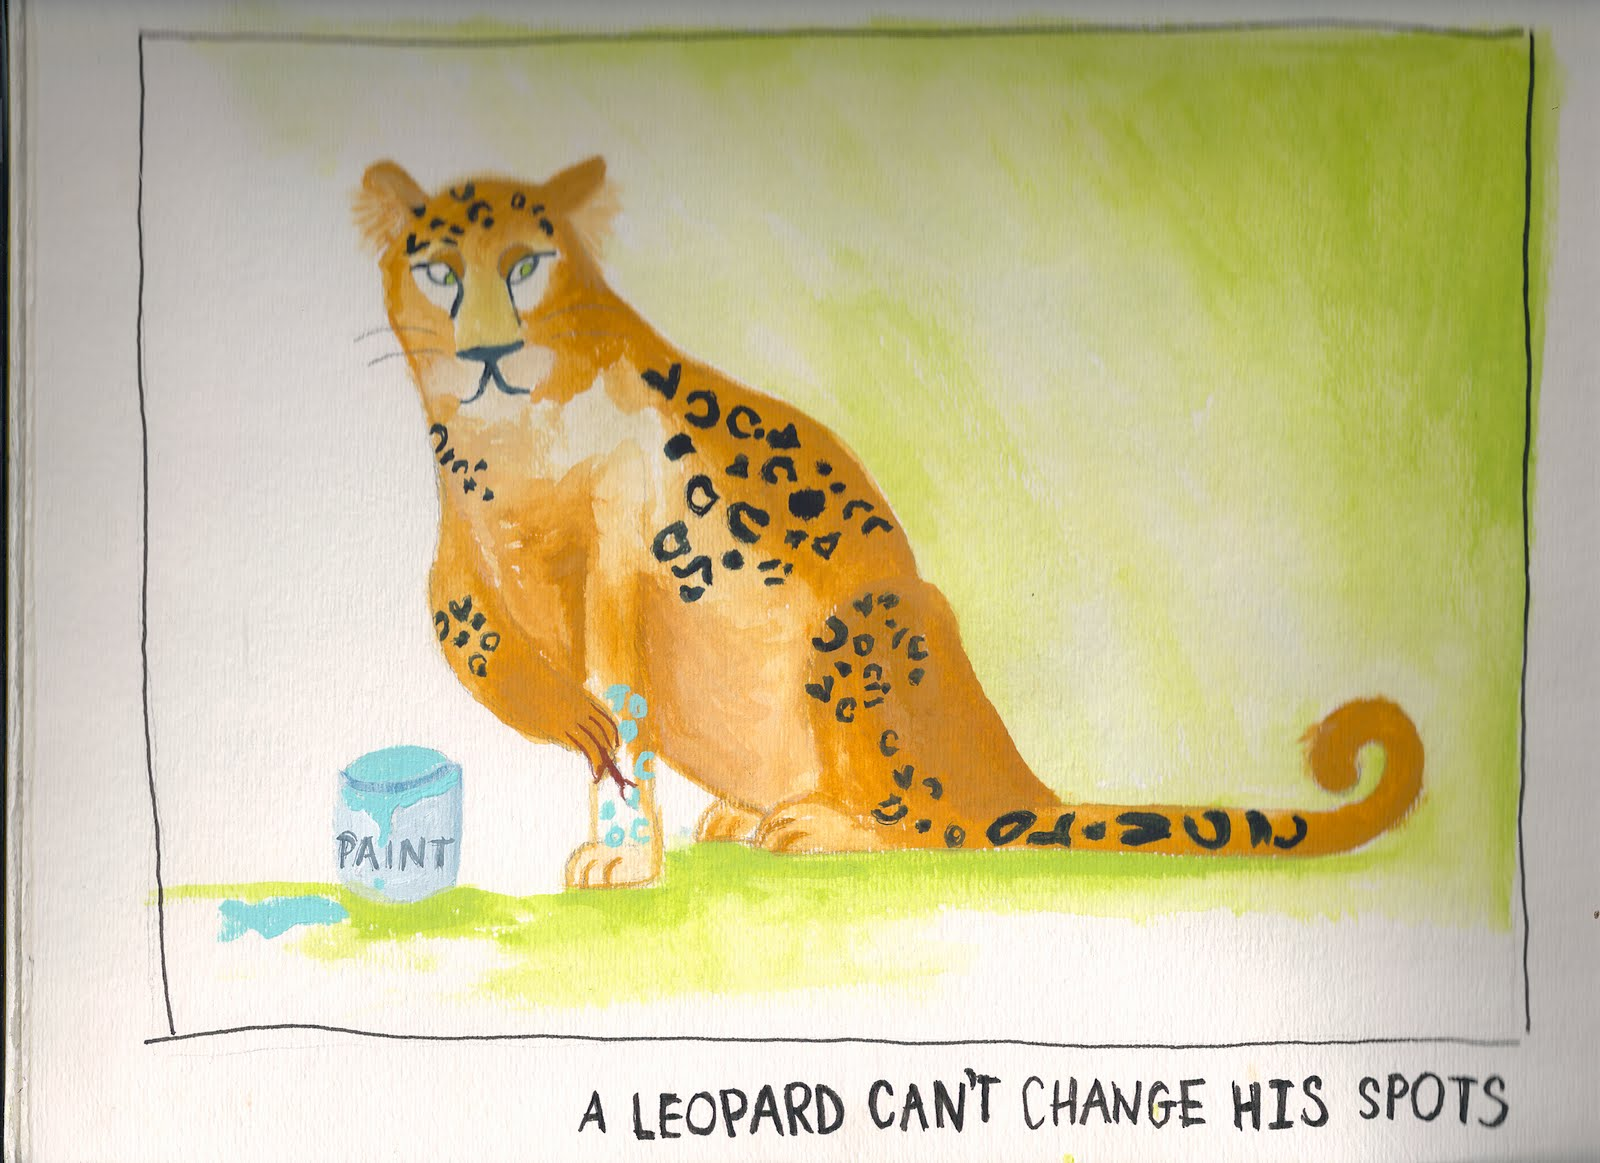 a leopard cannot change his spots